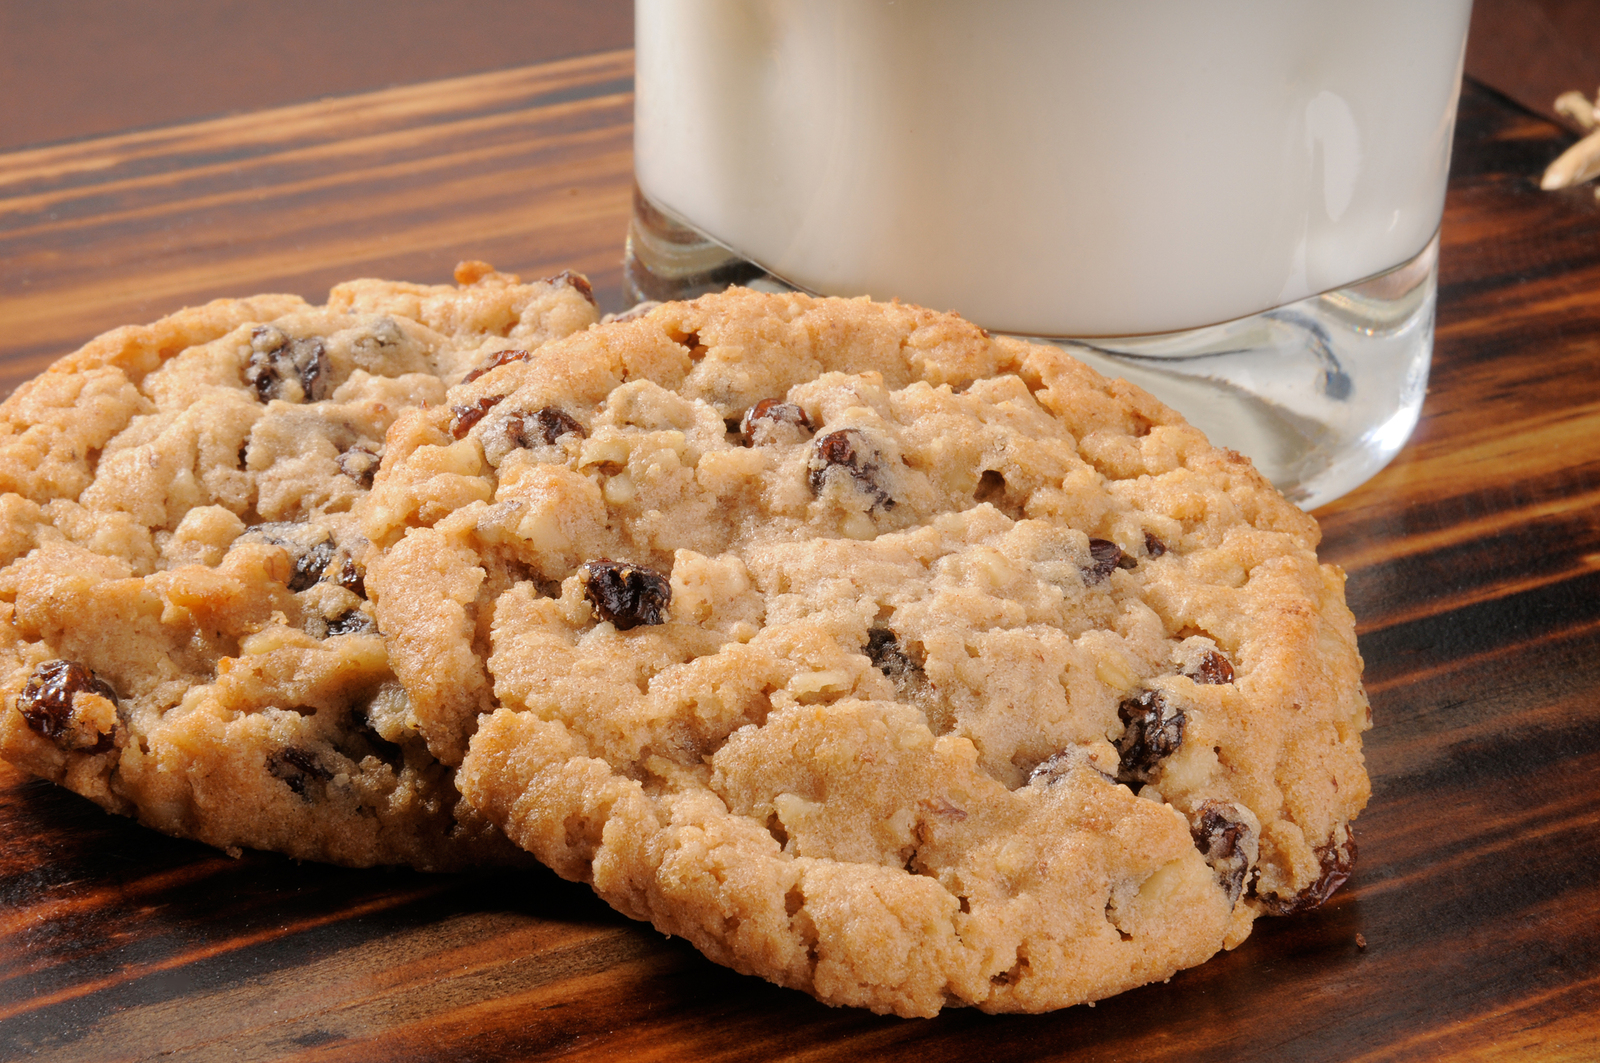 Choose your favorite recipe and take time to bake some delicious cookies this month (Photo Credit: BigStockPhoto.com)